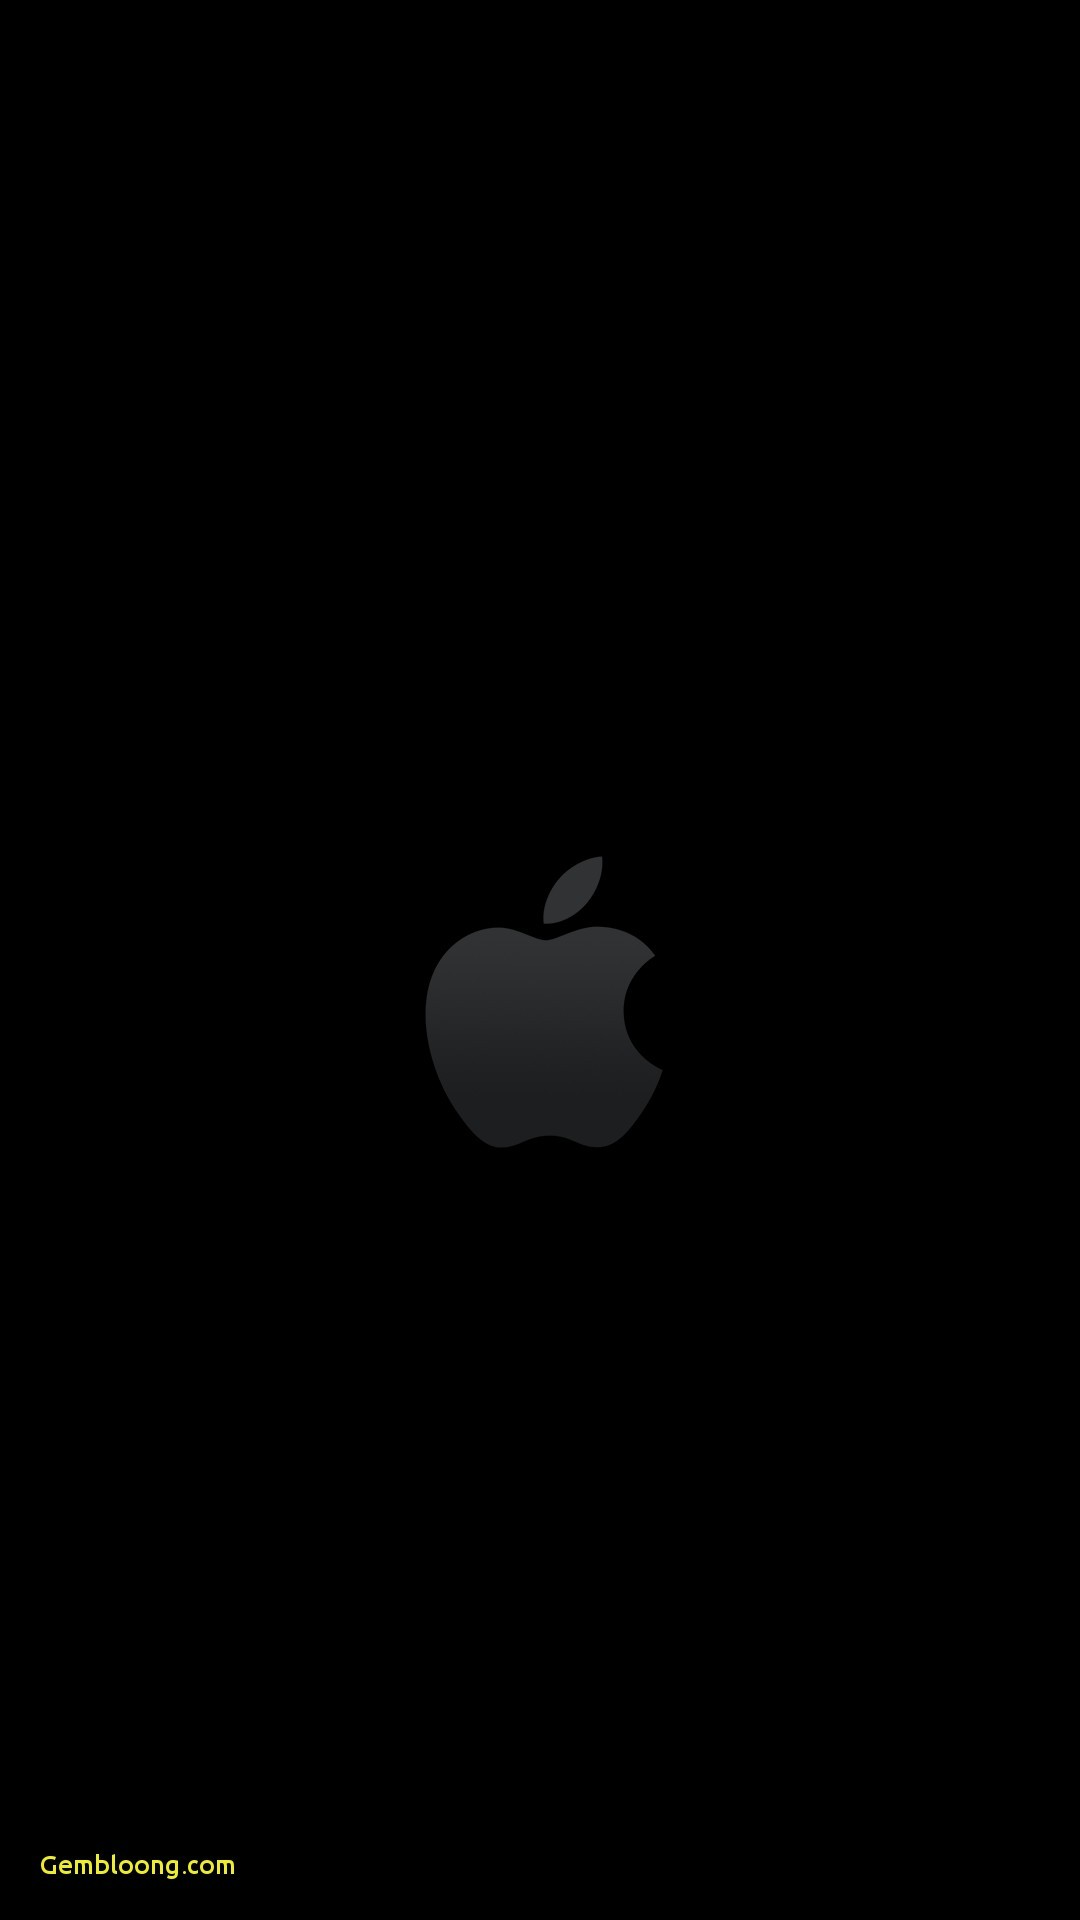 Wallpaper Android Vs Apple Hd Fresh Best Black Screen Images On O